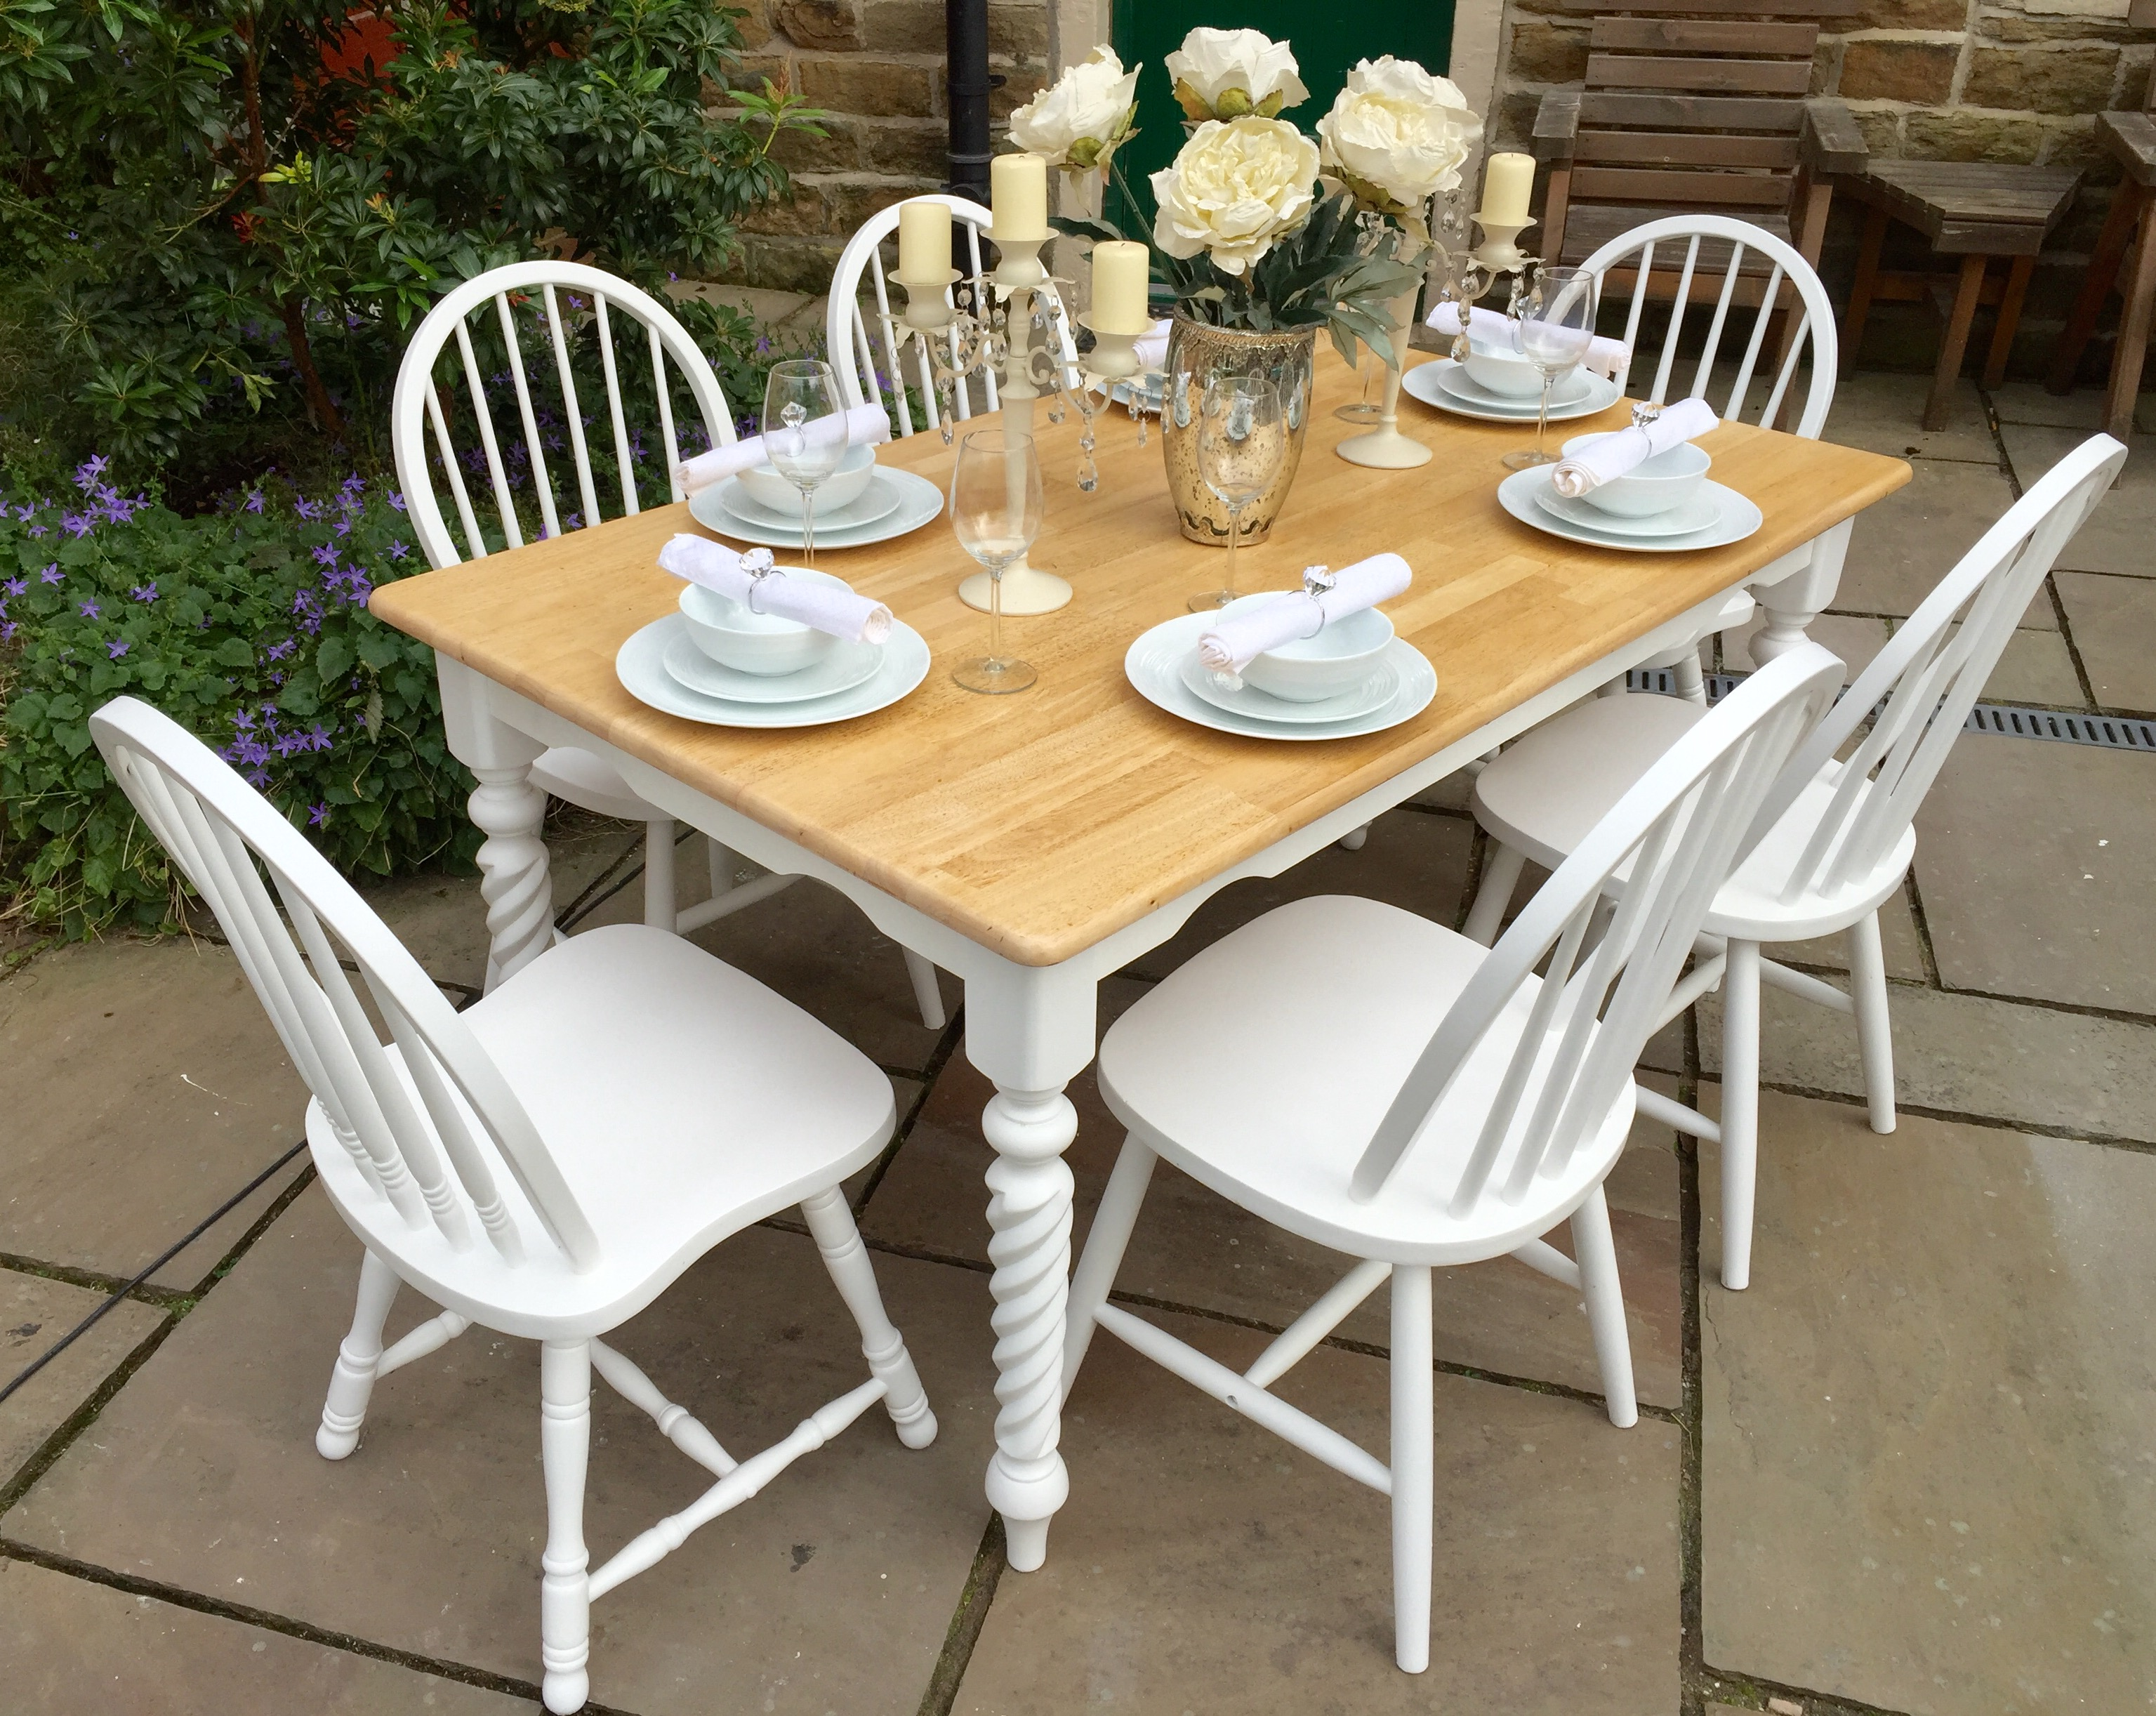 Farmhouse Dining Table & 6 Chairs